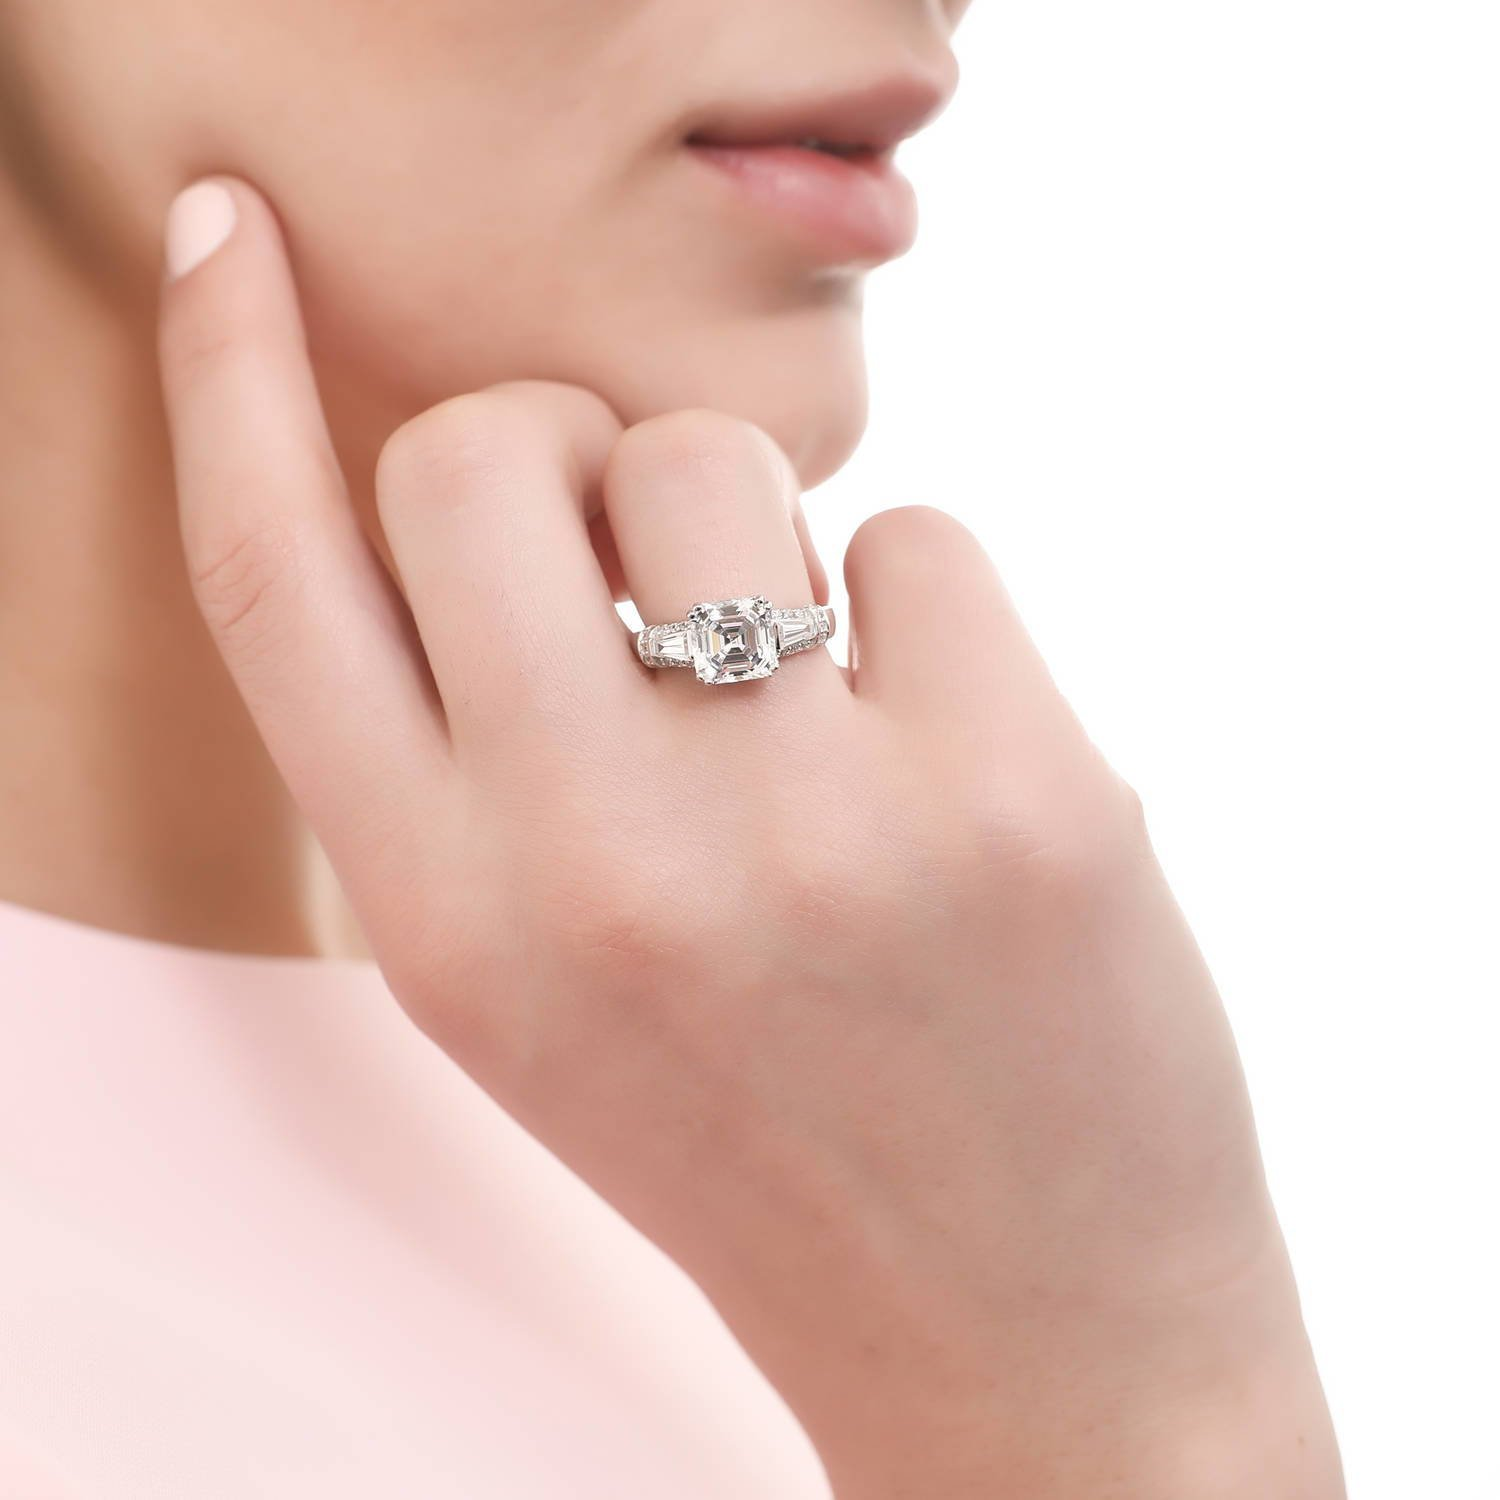 BERRICLE Rhodium Plated Silver Asscher Cut Cubic Zirconia CZ 3-Stone Engagement Ring 3.4 CTW Size 7 by BERRICLE (Image #4)